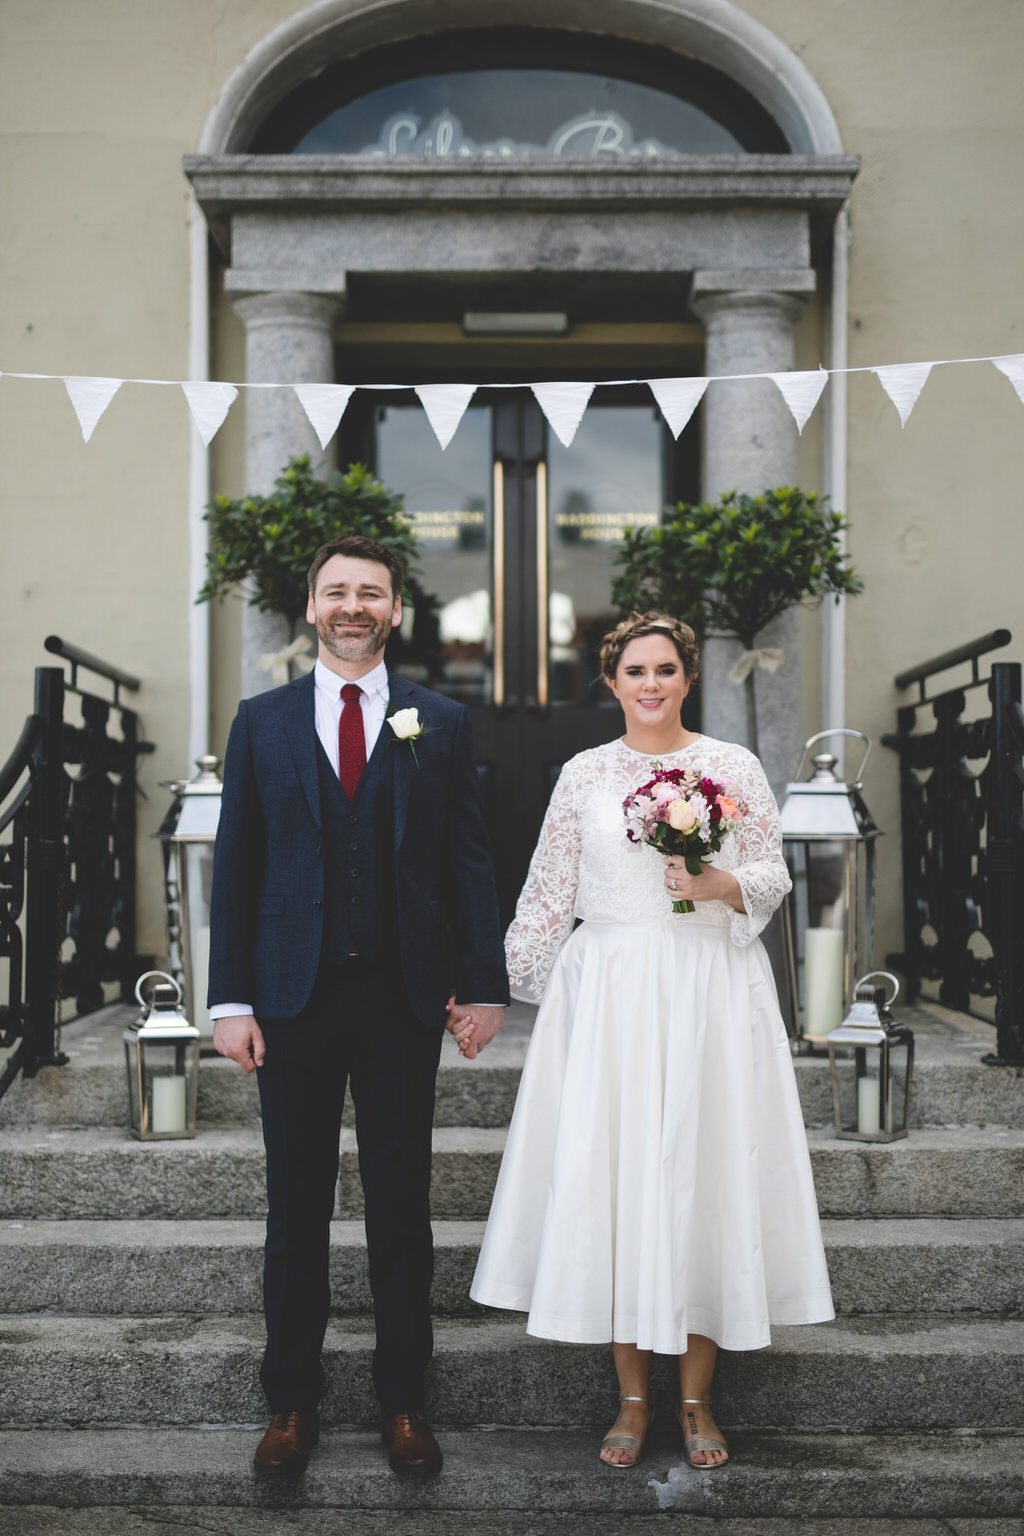 Dublin seaside wedding venue - the Haddington House